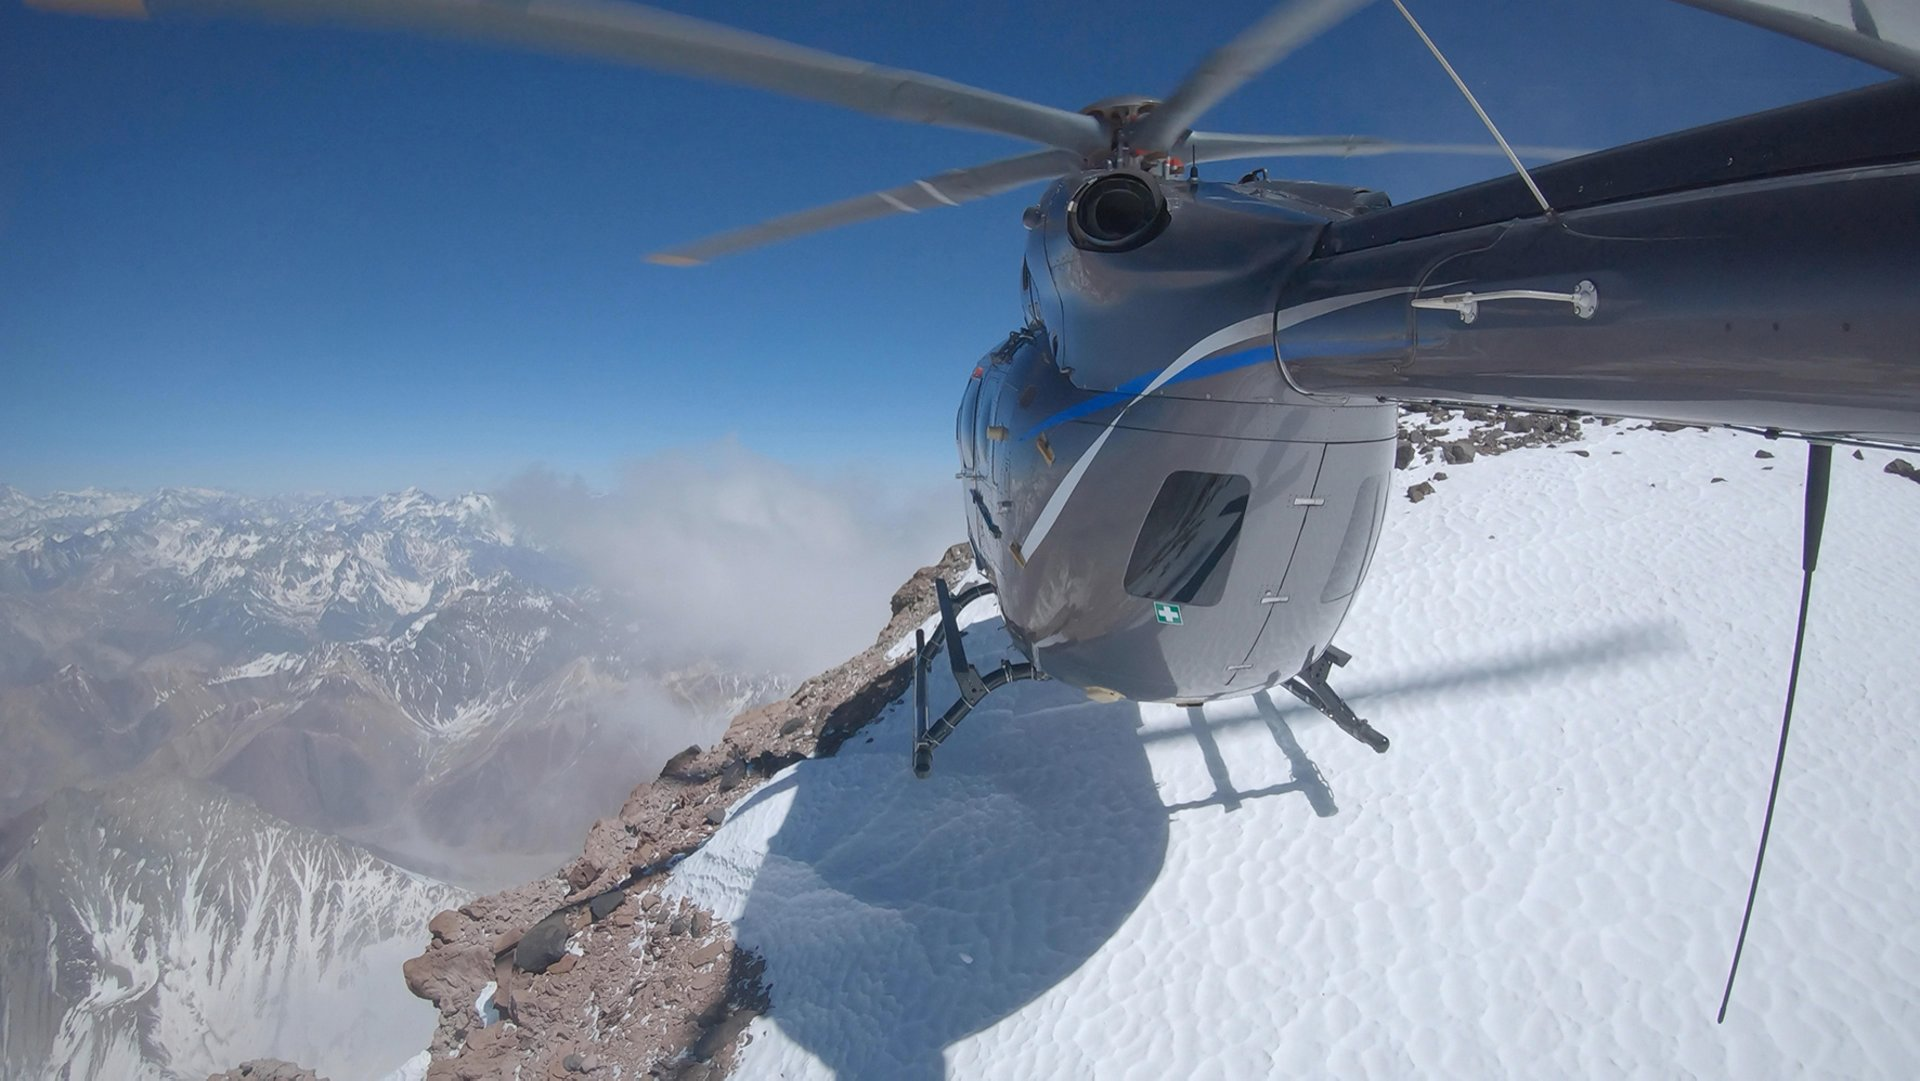 The latest version of the H145 has set its skids down on the Aconcagua, the highest mountain in the Southern Hemisphere, culminating at 6,962 metres (22,840 feet). This is the first time a twin-engine helicopter has landed at this altitude, confirming the performance and the extensive flight envelope of the new H145.